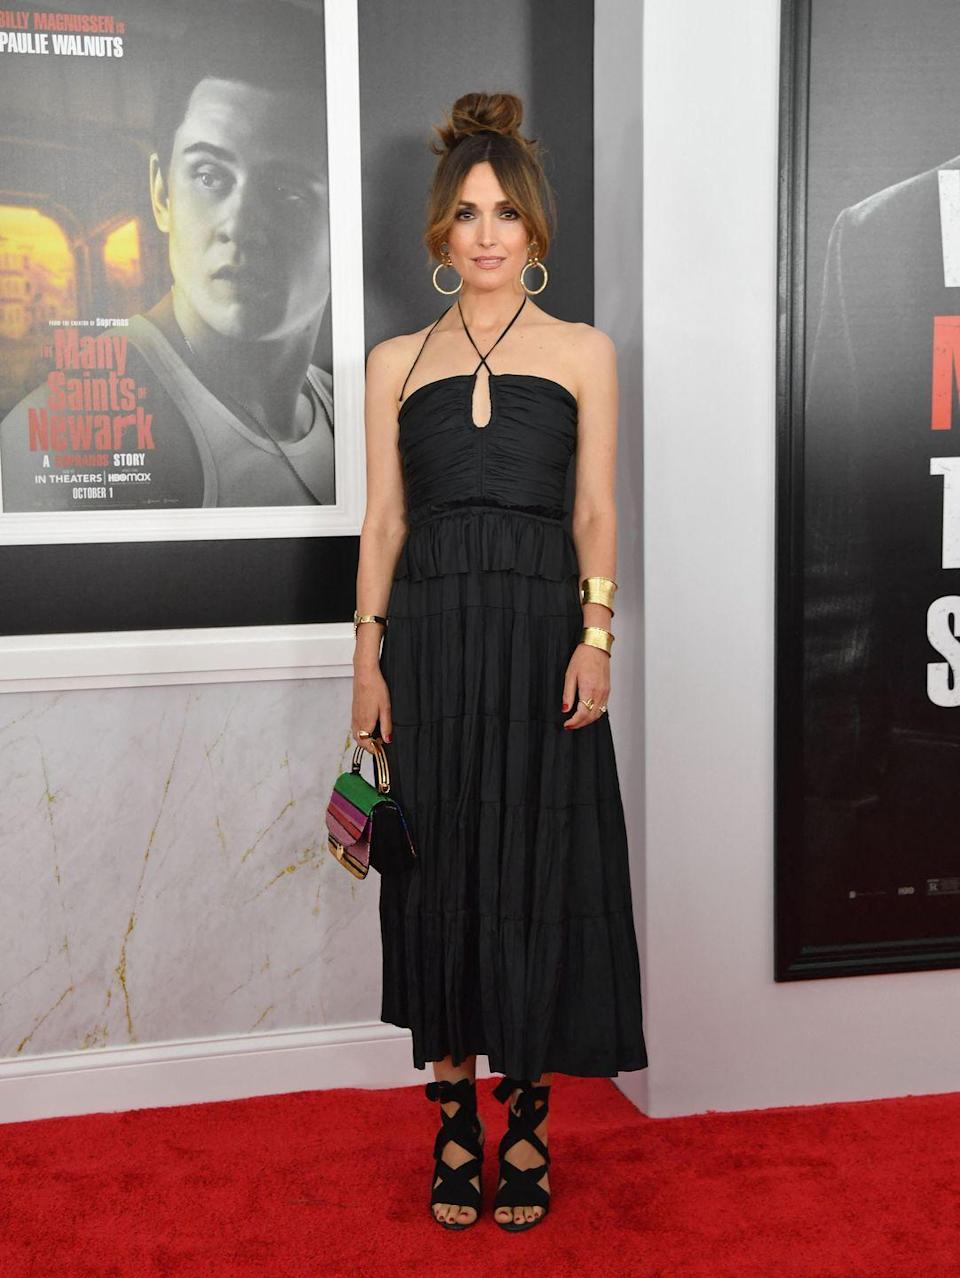 <p><strong>22 September</strong></p><p>Rose Byrne wore an Ulla Johnson dress and wrap-around sandals for The Many Saints of Newark premiere in New York.</p>